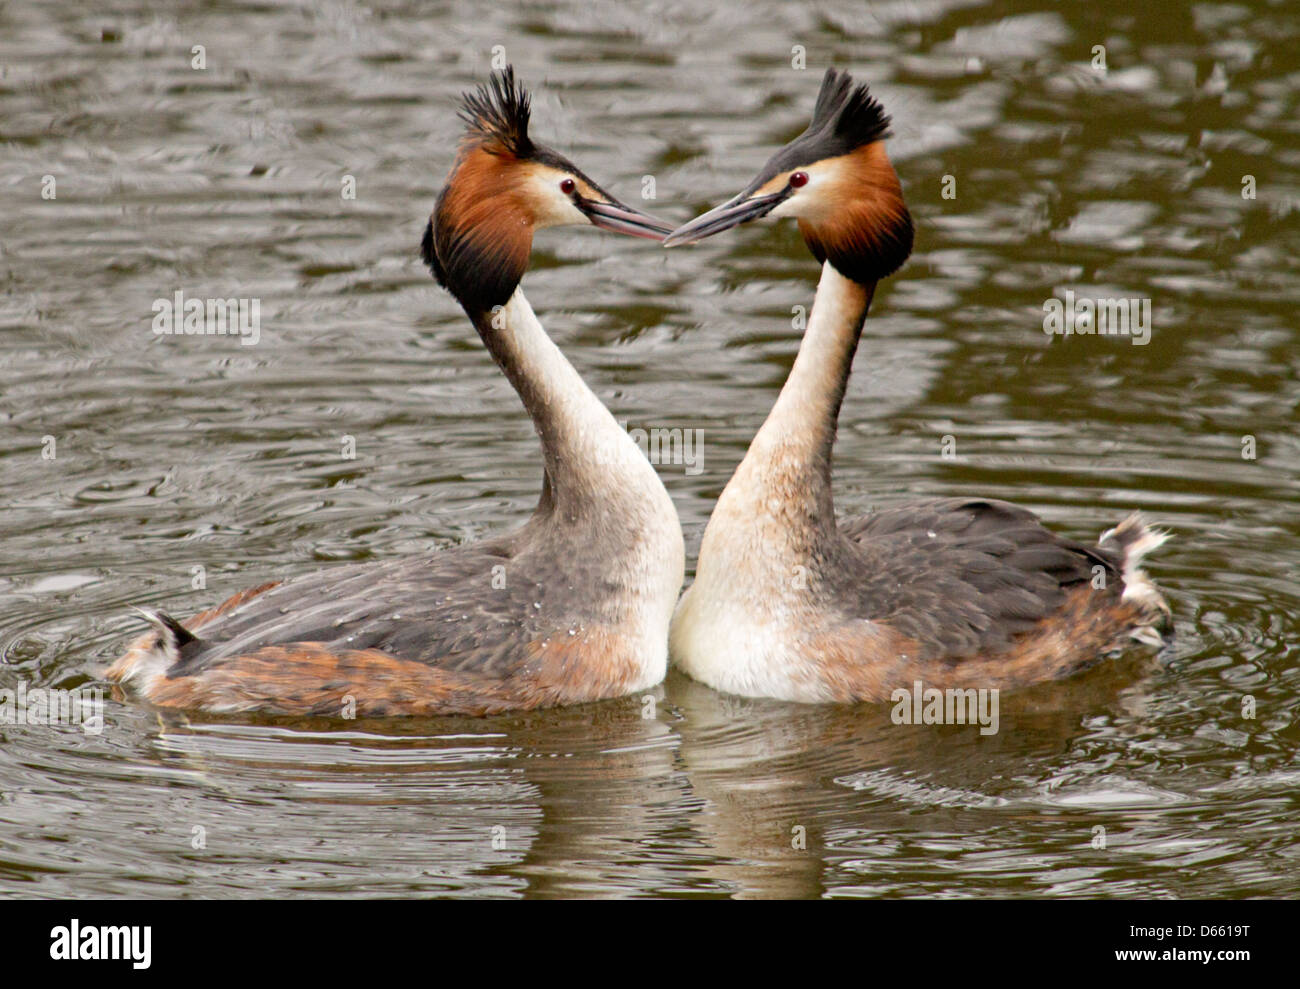 great crested grebe courtship display - Stock Image